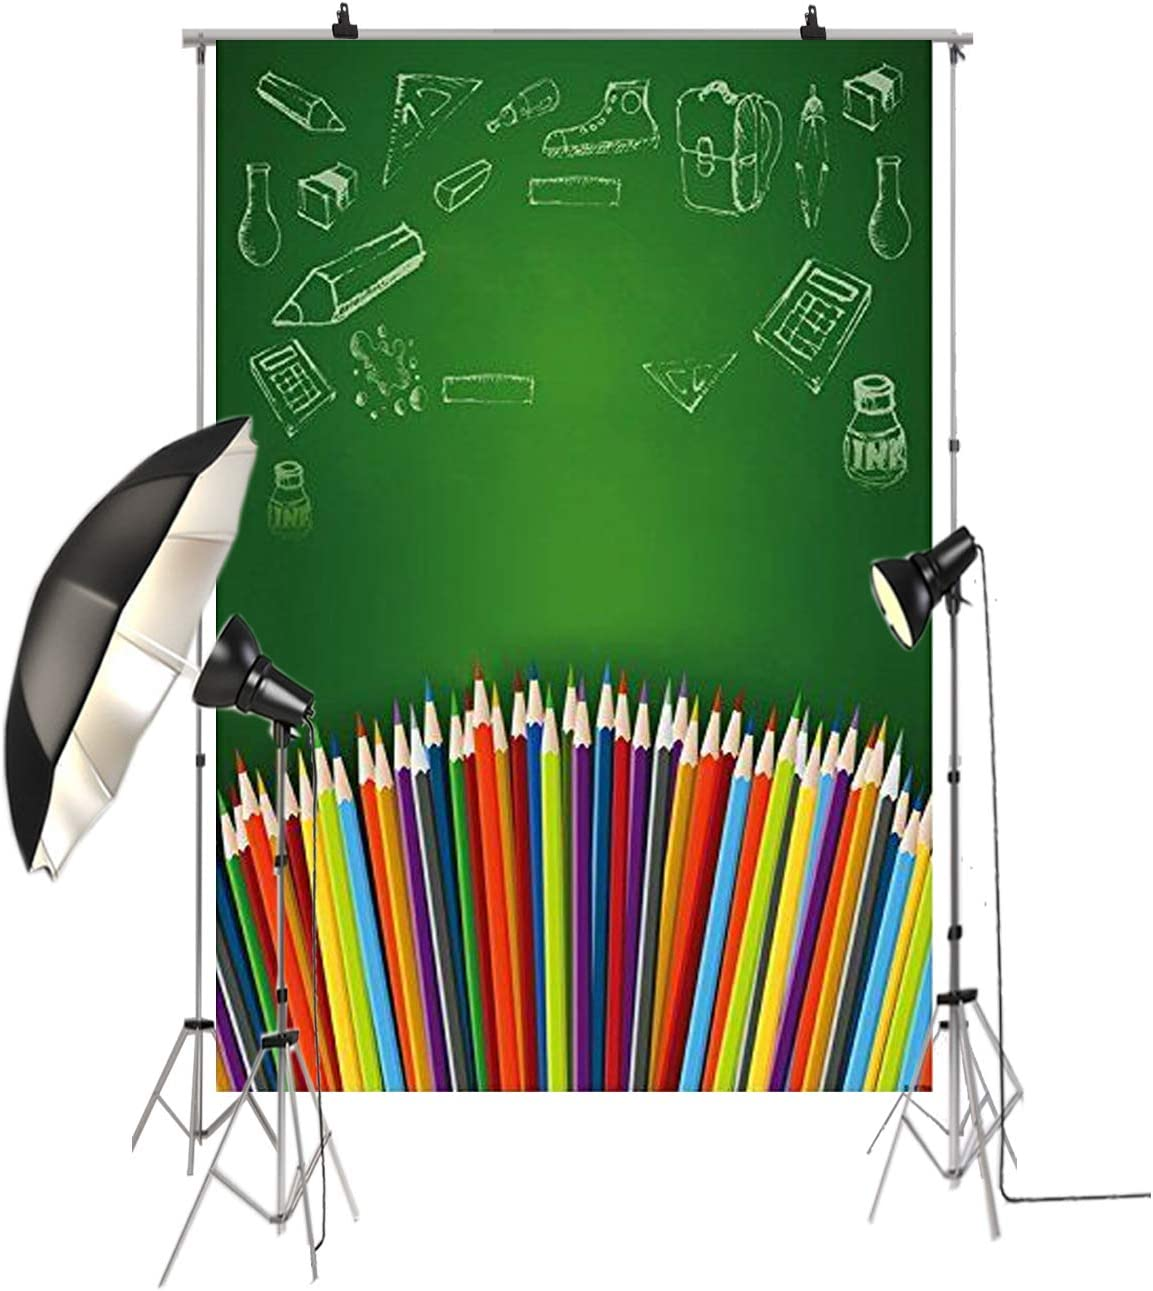 5x7ft Back to School Backdrop Colorful Pencils Background for Photography School Memorial Classroom Theme Baby Shower Photo Props Studio D-3557